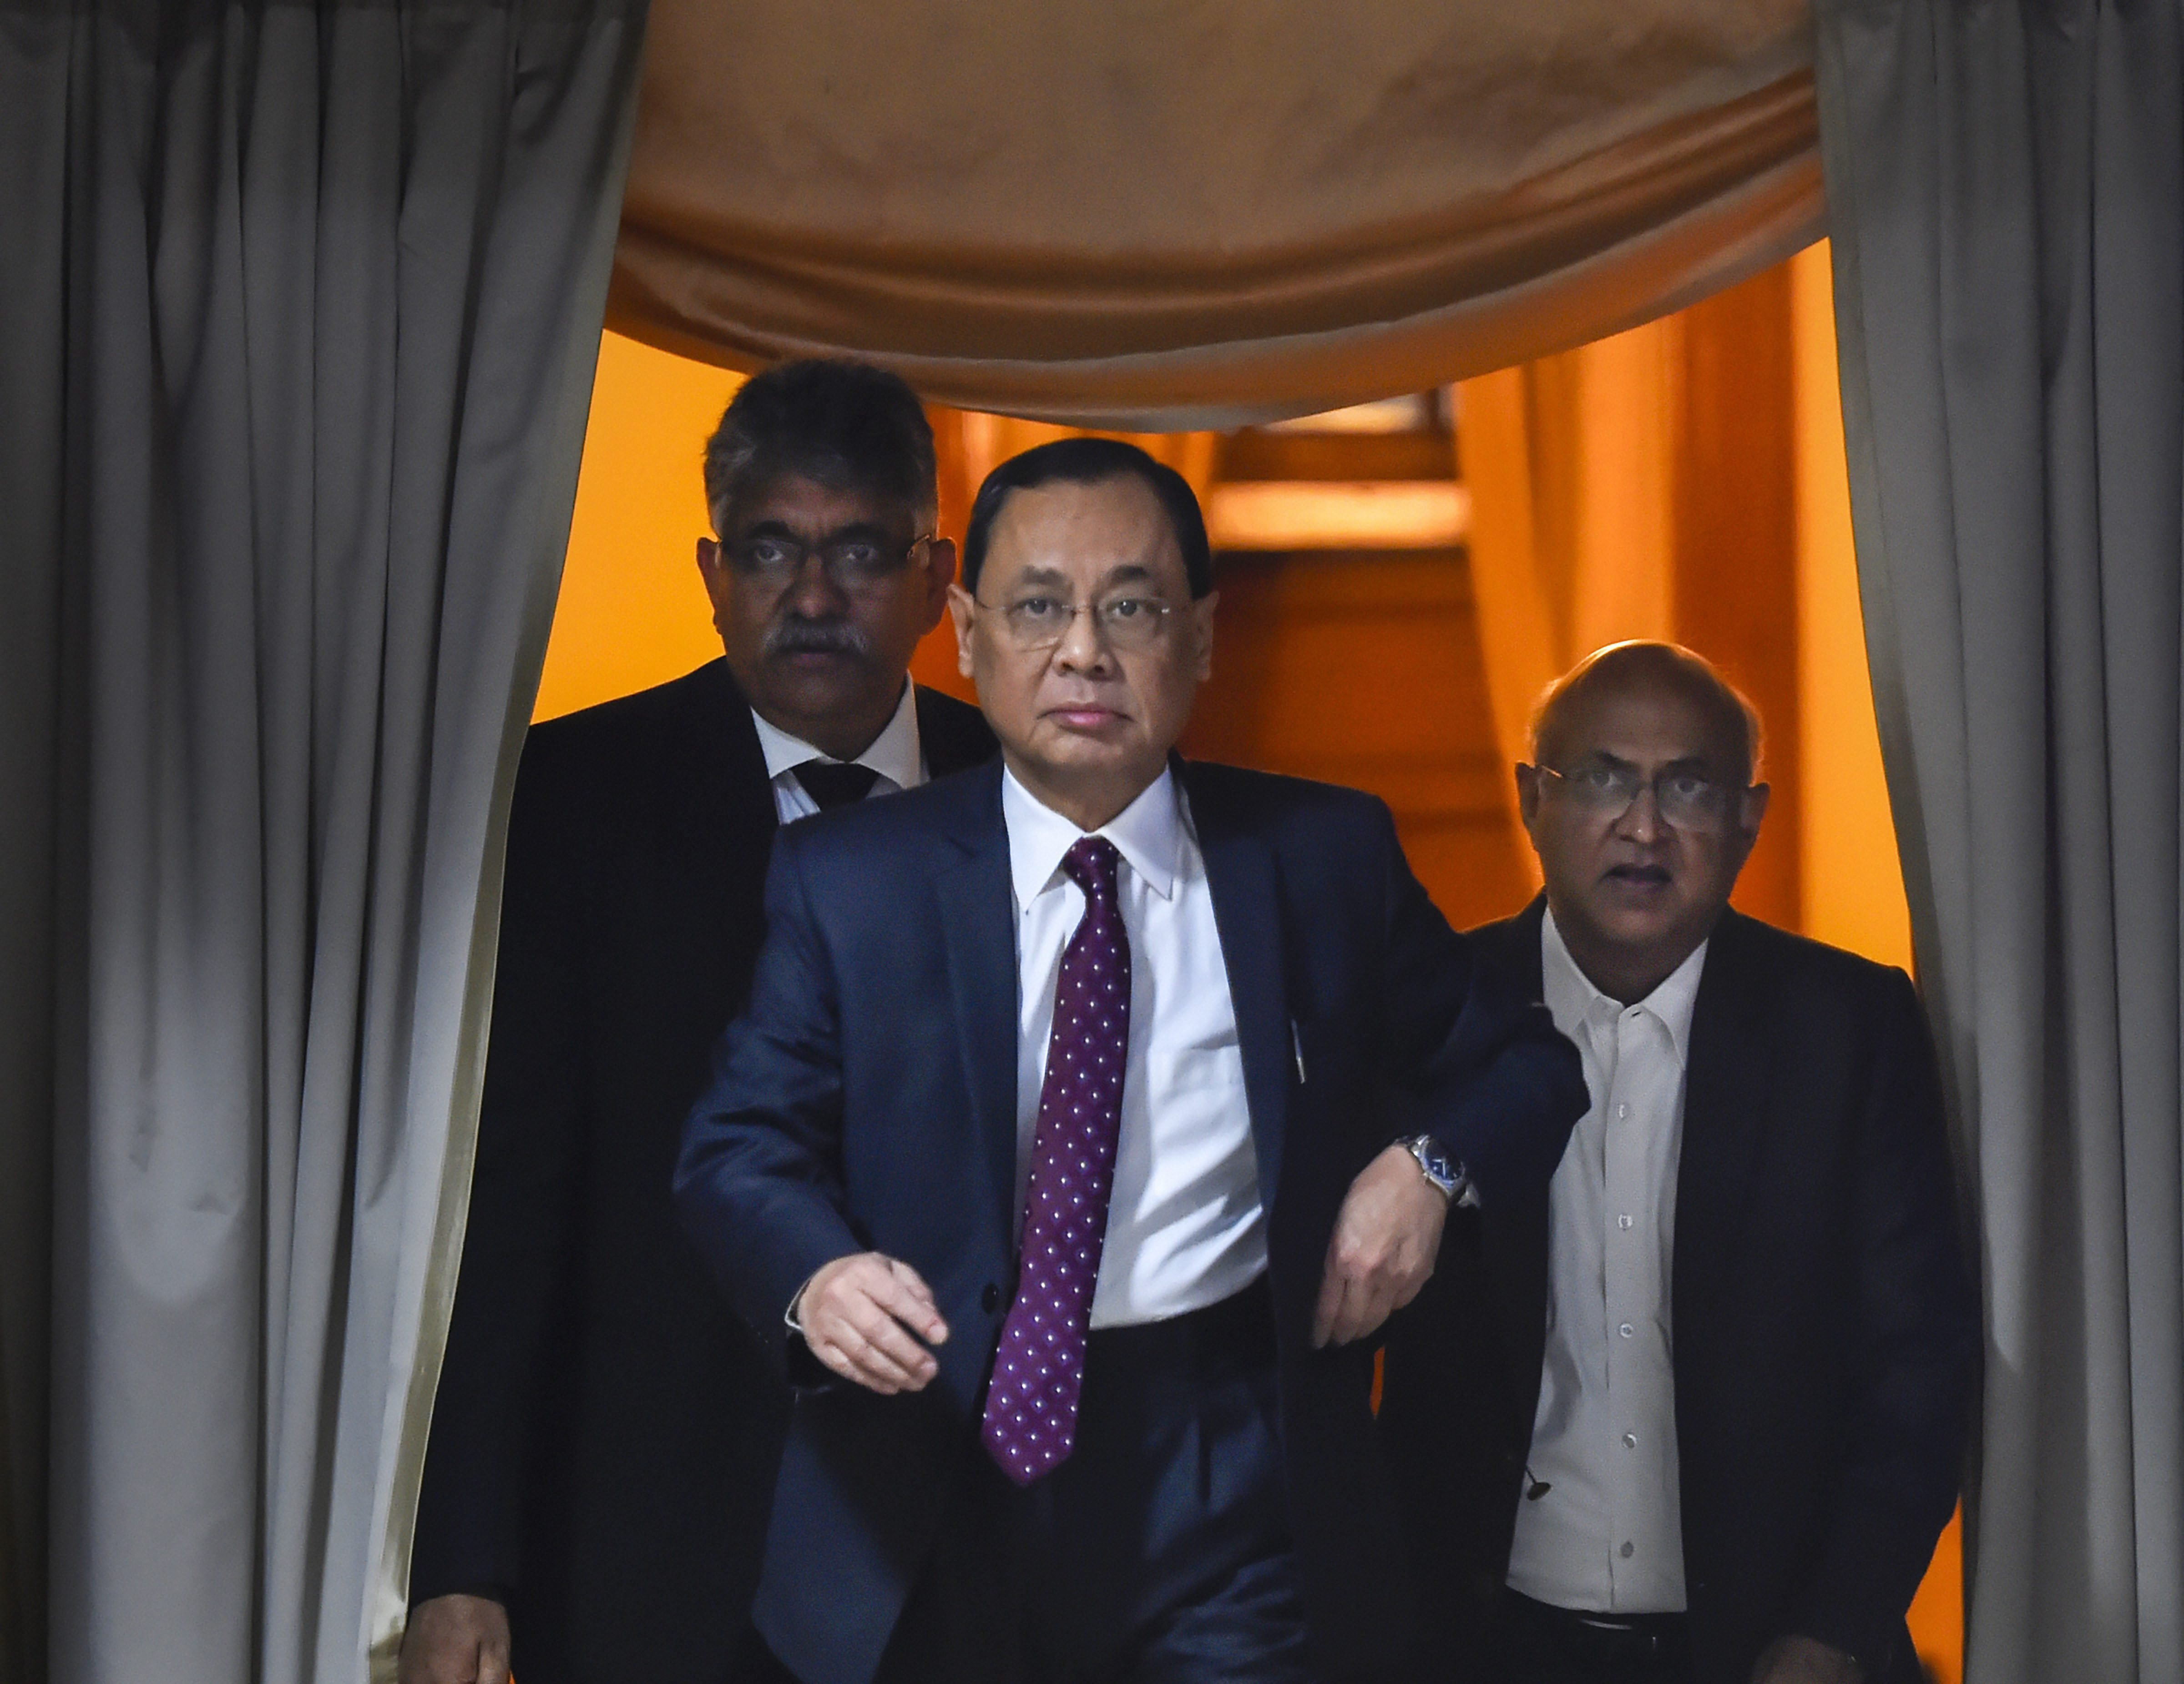 Chief Justice of India Ranjan Gogoi arrives for the launch of 'guided-tour to the premises of the Supreme Court of India' in New Delhi - PTI